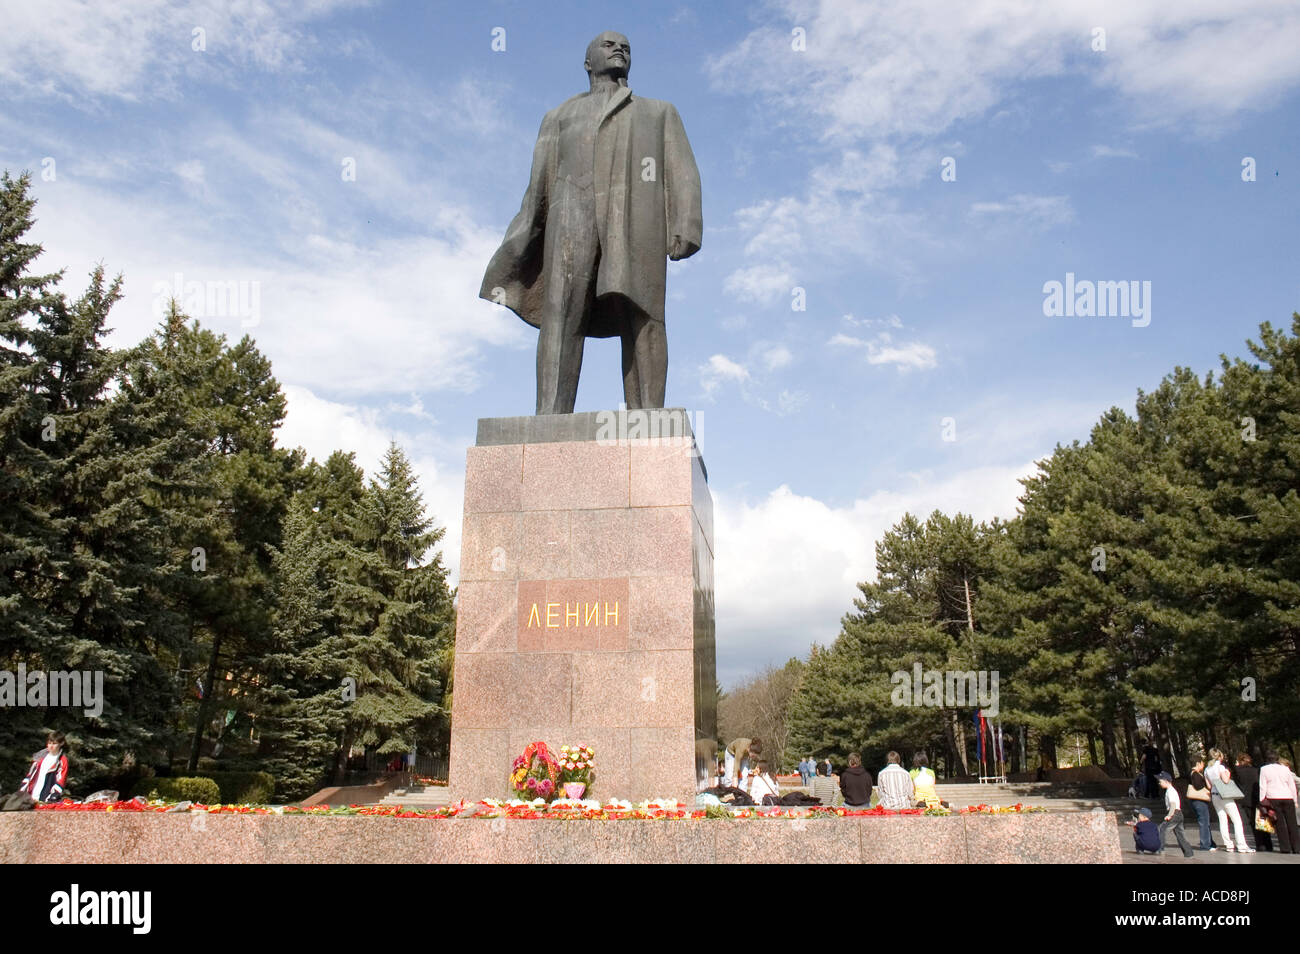 Lenin statue in the main square of the North Caucasus city of Pyatigorsk in Southern Russia - Stock Image